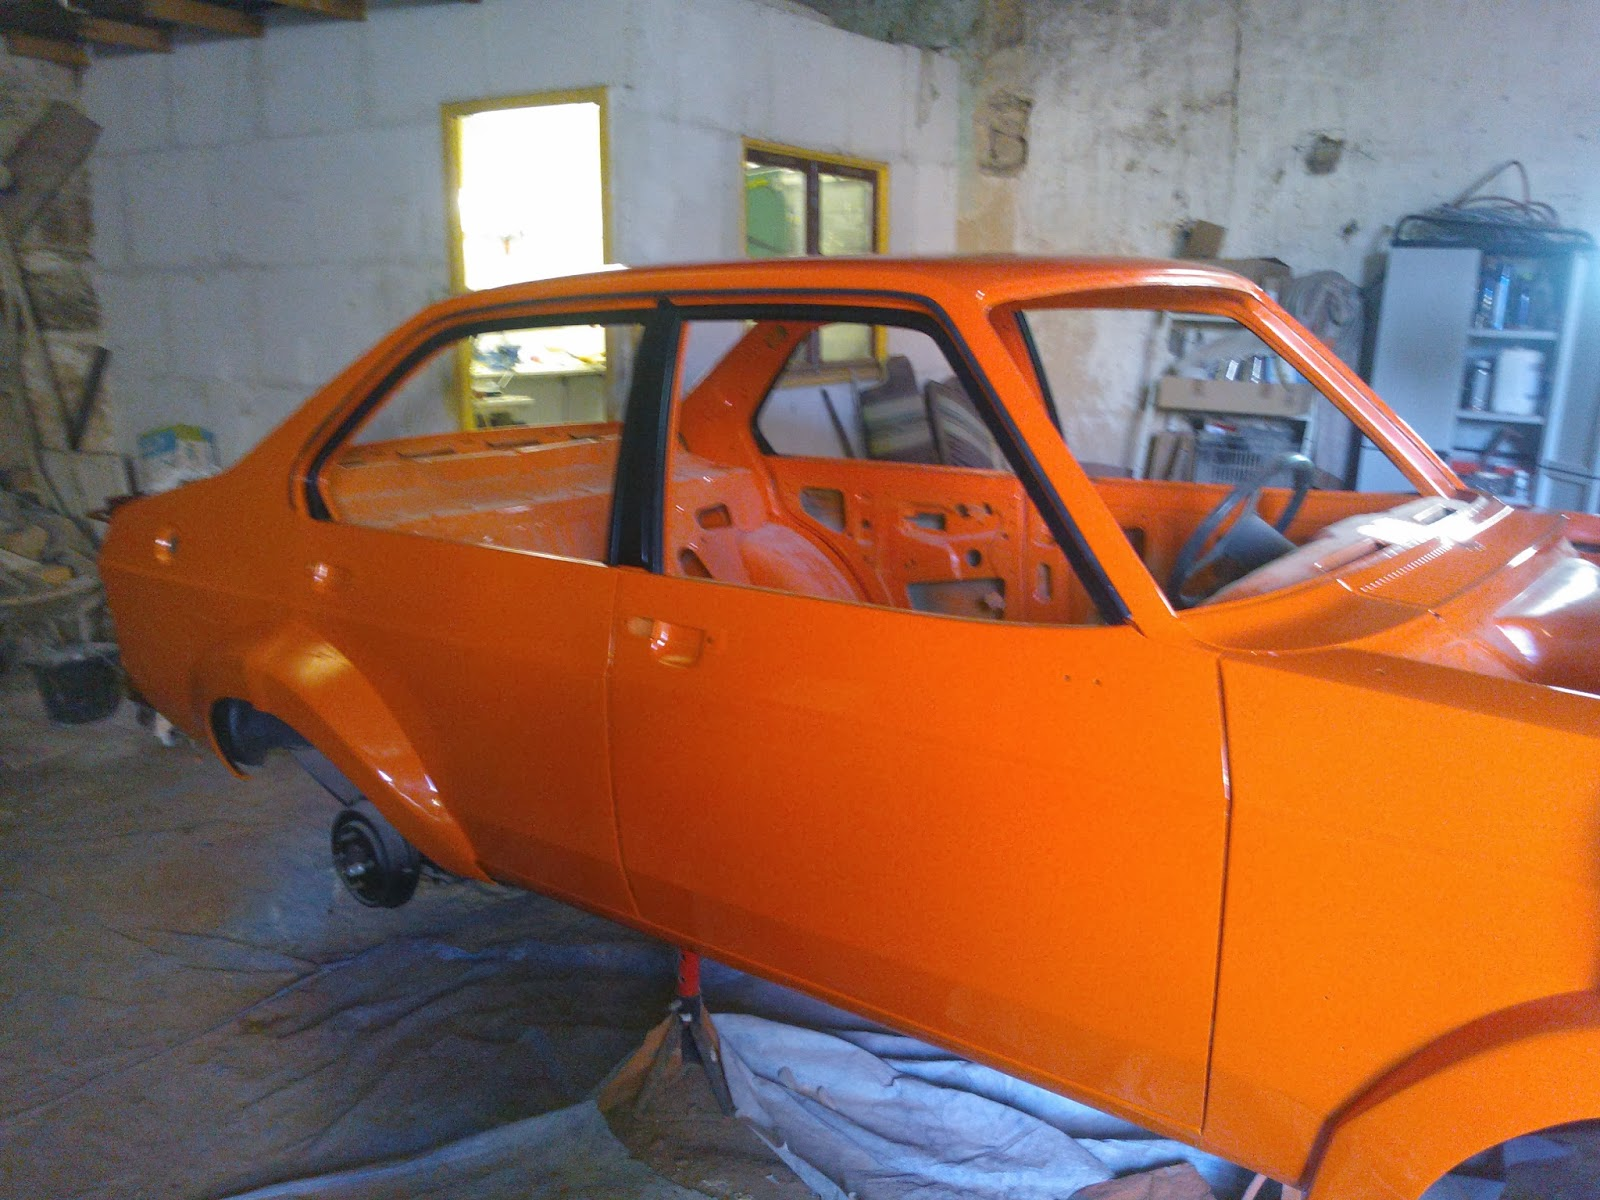 restauration de ma ford escort mk2 d cembre 2013. Black Bedroom Furniture Sets. Home Design Ideas